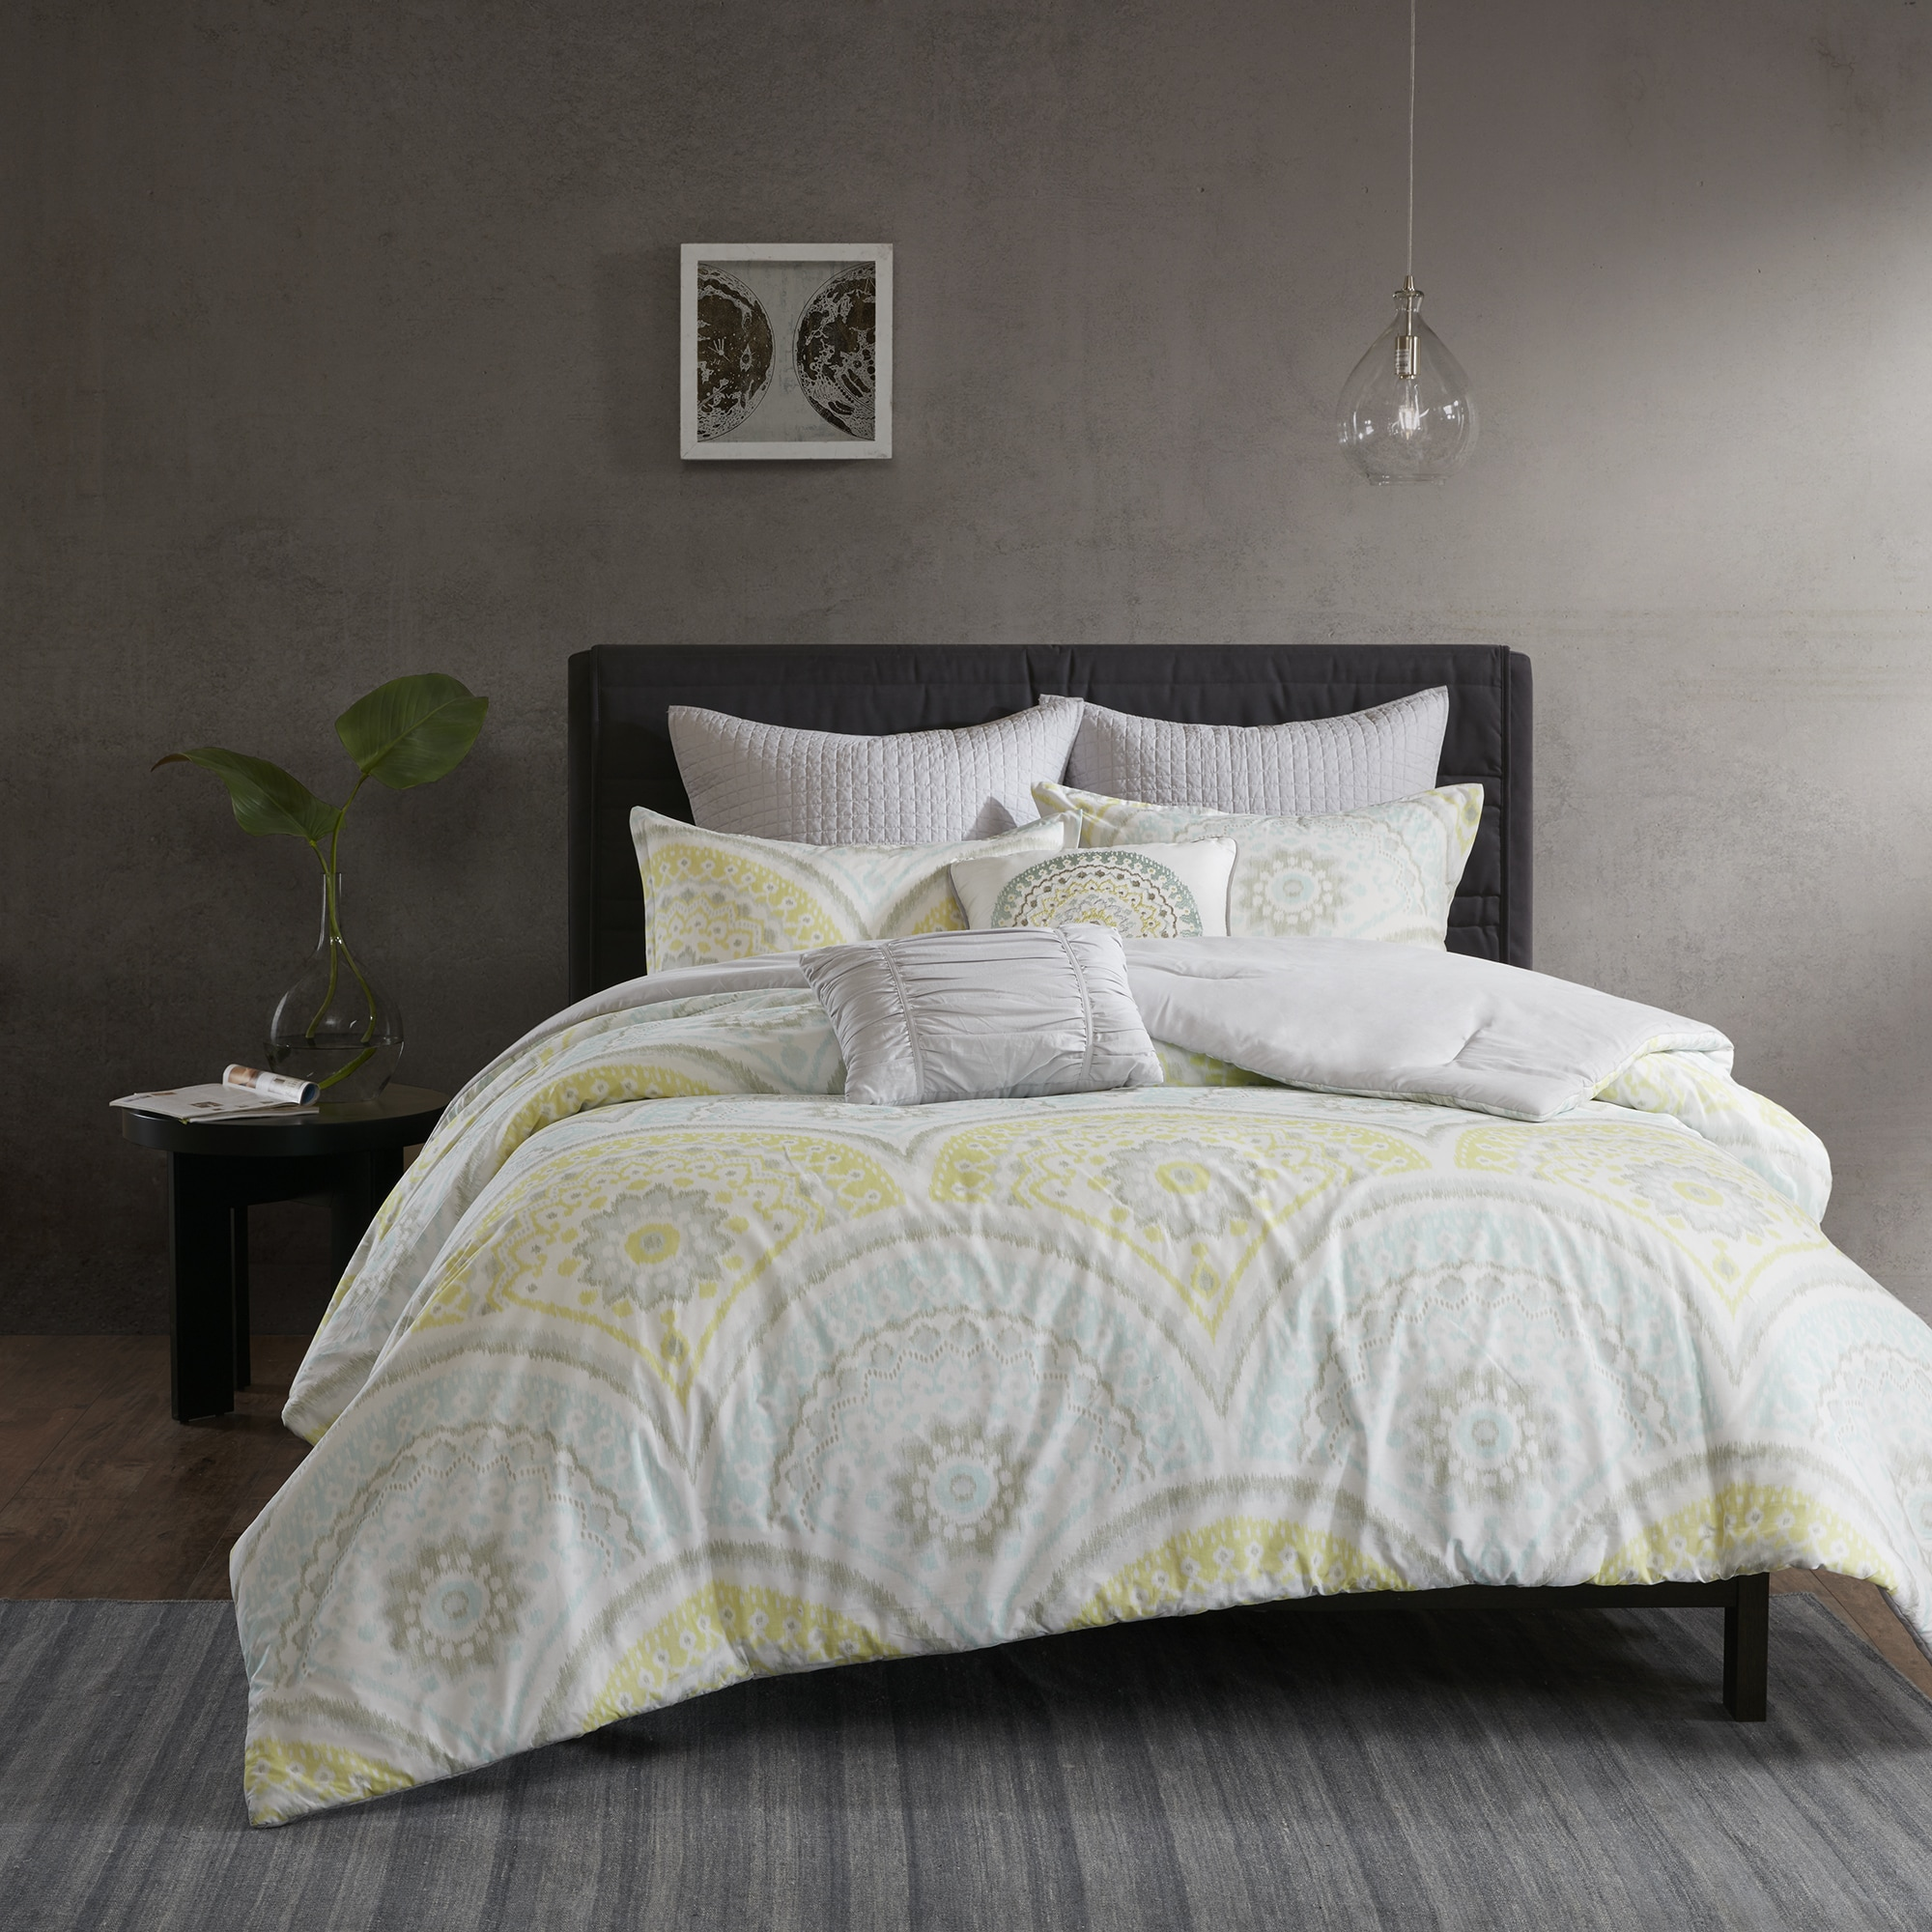 conrad loft free bedding set bed cottage comforter today shipping cummins cotton bath com carbon overstock cfae piece stone product